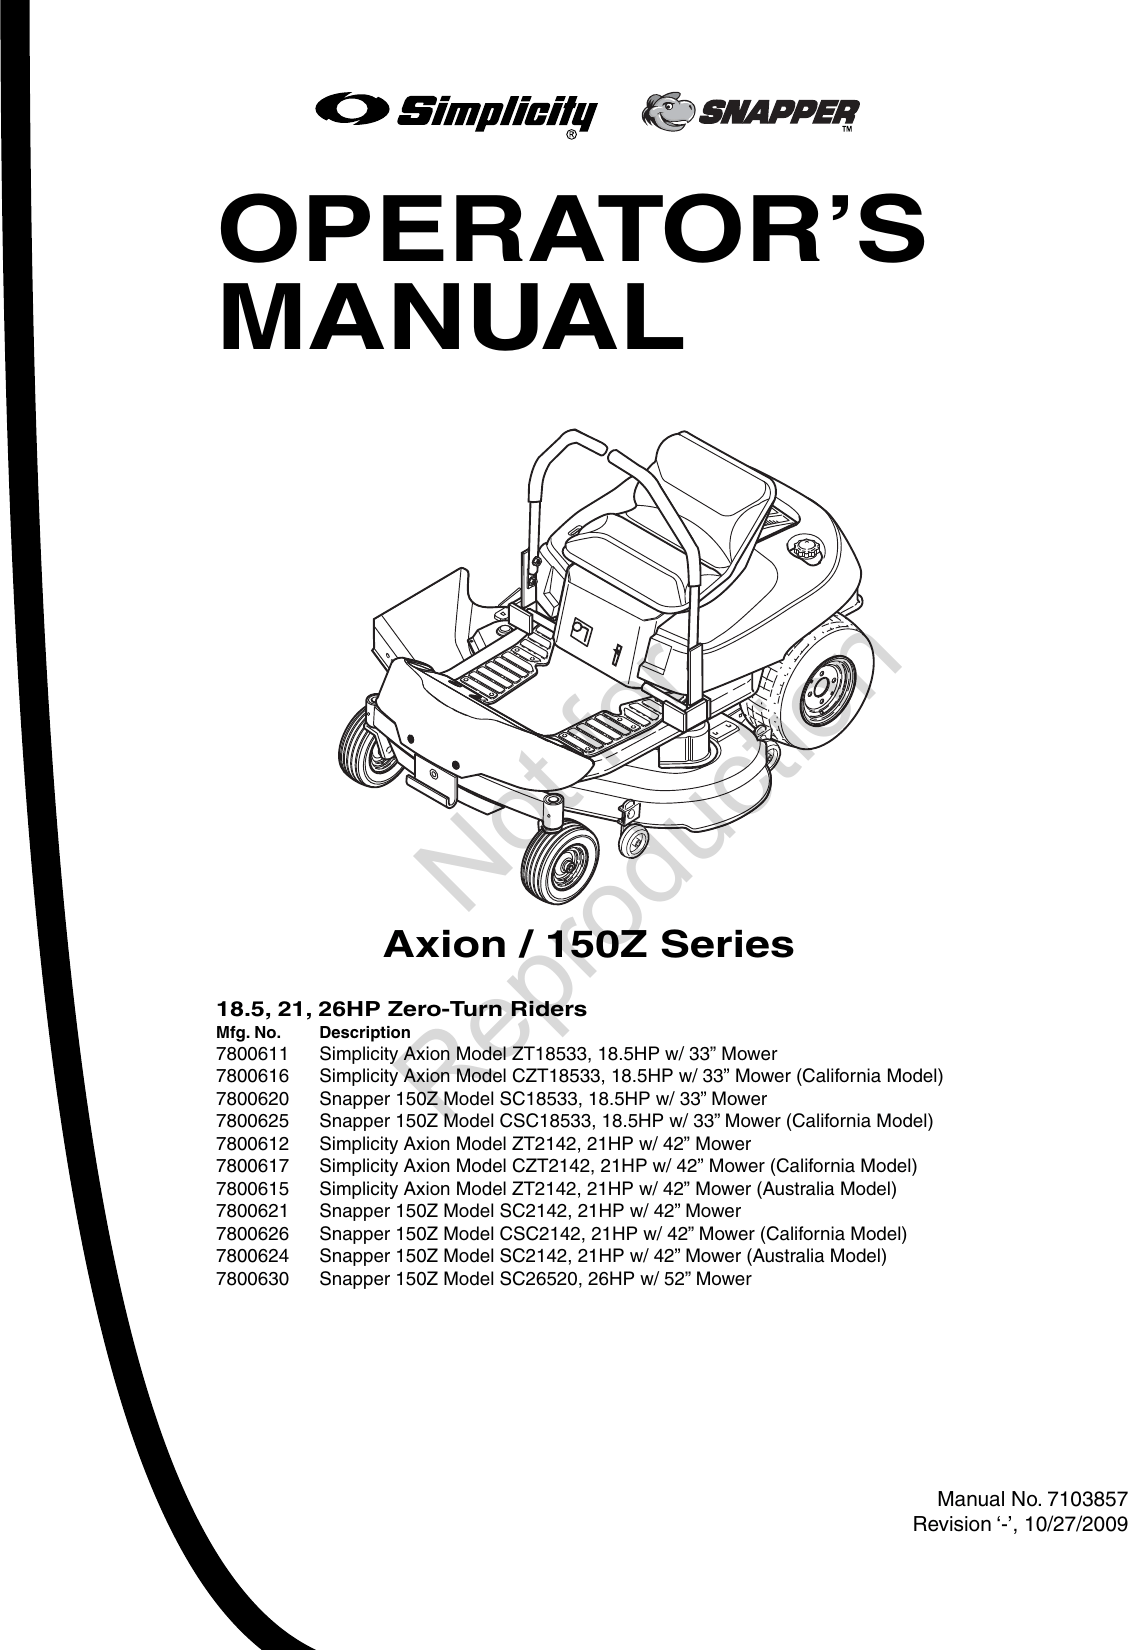 Axion Zt18533 Users Manual